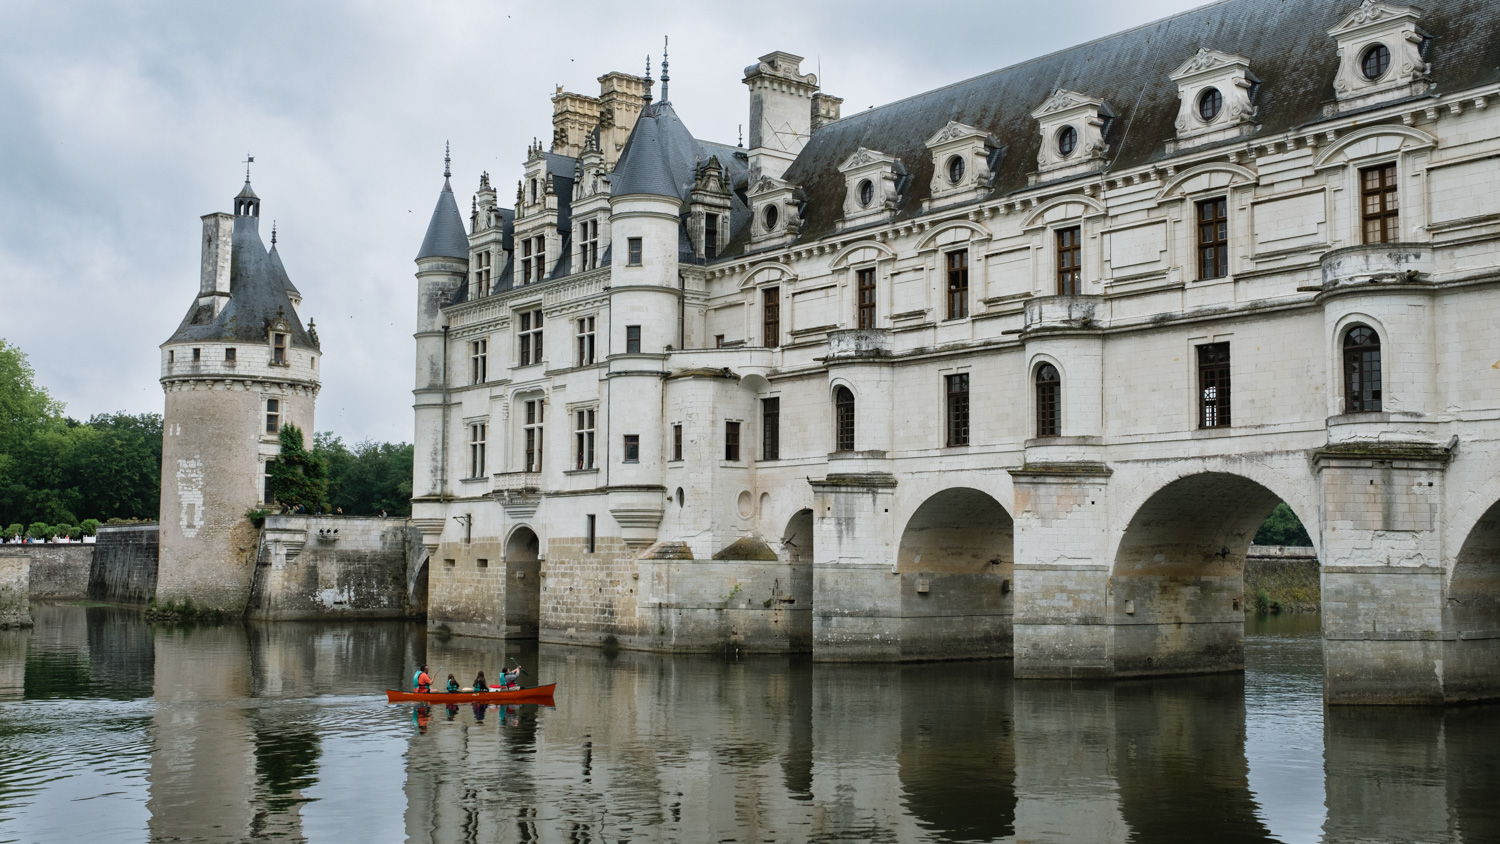 "Family in a canoe at the Château de Chenonceau, Loire Valley. Travel photography and guide by © Natasha Lequepeys for ""And Then I Met Yoko"". #loirevalley #france #travelguide #photoblog #travelblog #travelphotography #landscapephotography #architecturephotography #travelitinerary #fujifilm #valdeloire #loire #chambord #chenonceau #cheverny #chaumont #chateau #castles #discoverfrance #honeymoondestination"